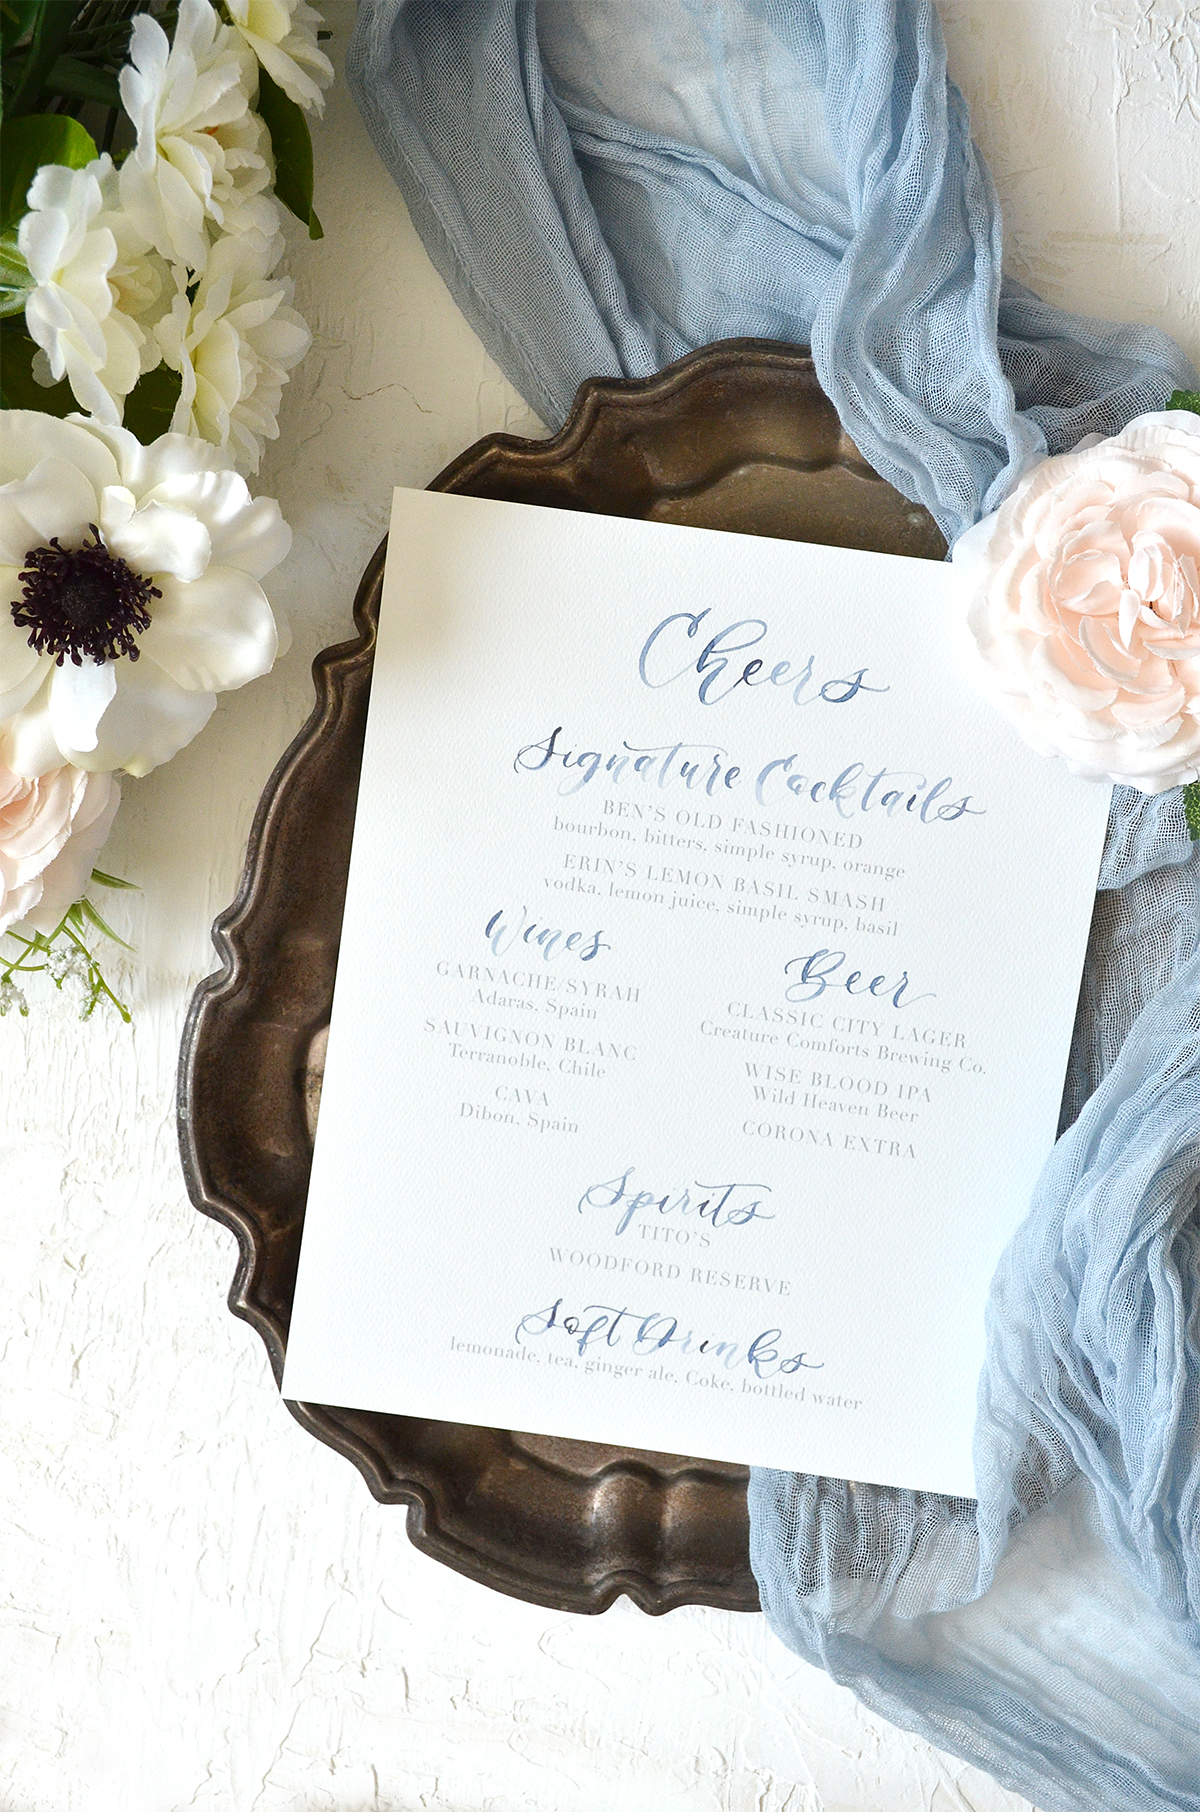 Watercolor Cheers Wedding Reception Drink Menu Sign from YourNewFriendSam on Etsy